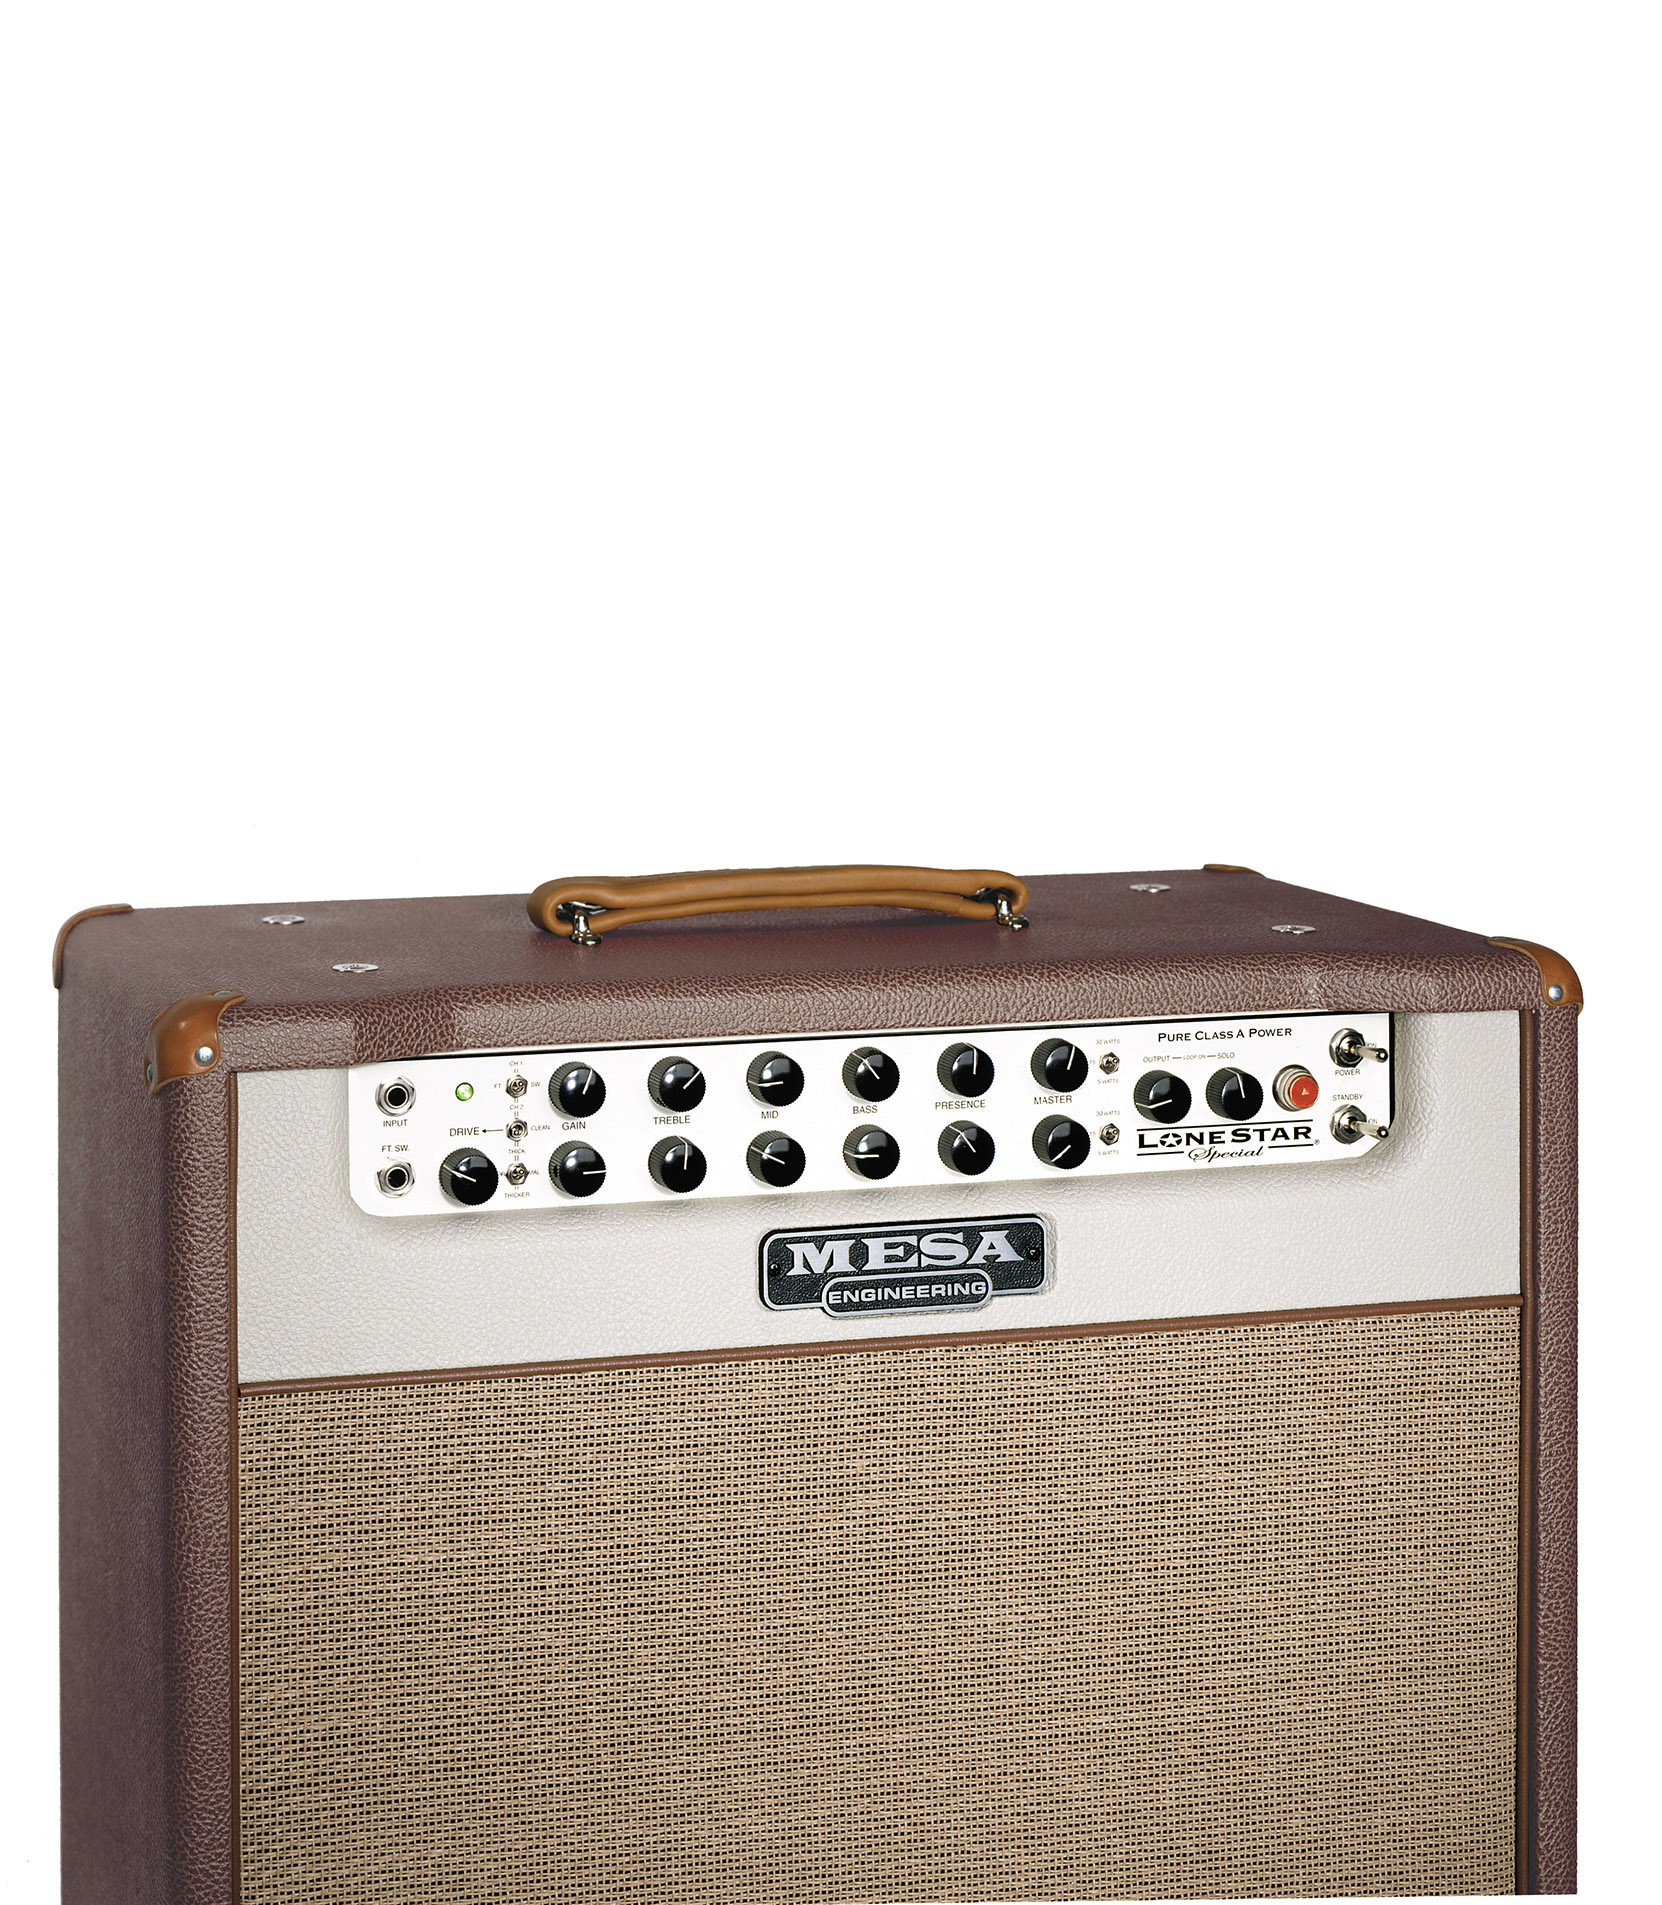 Melody House Musical Instruments Store - Lone Star Special 1x12 Combo